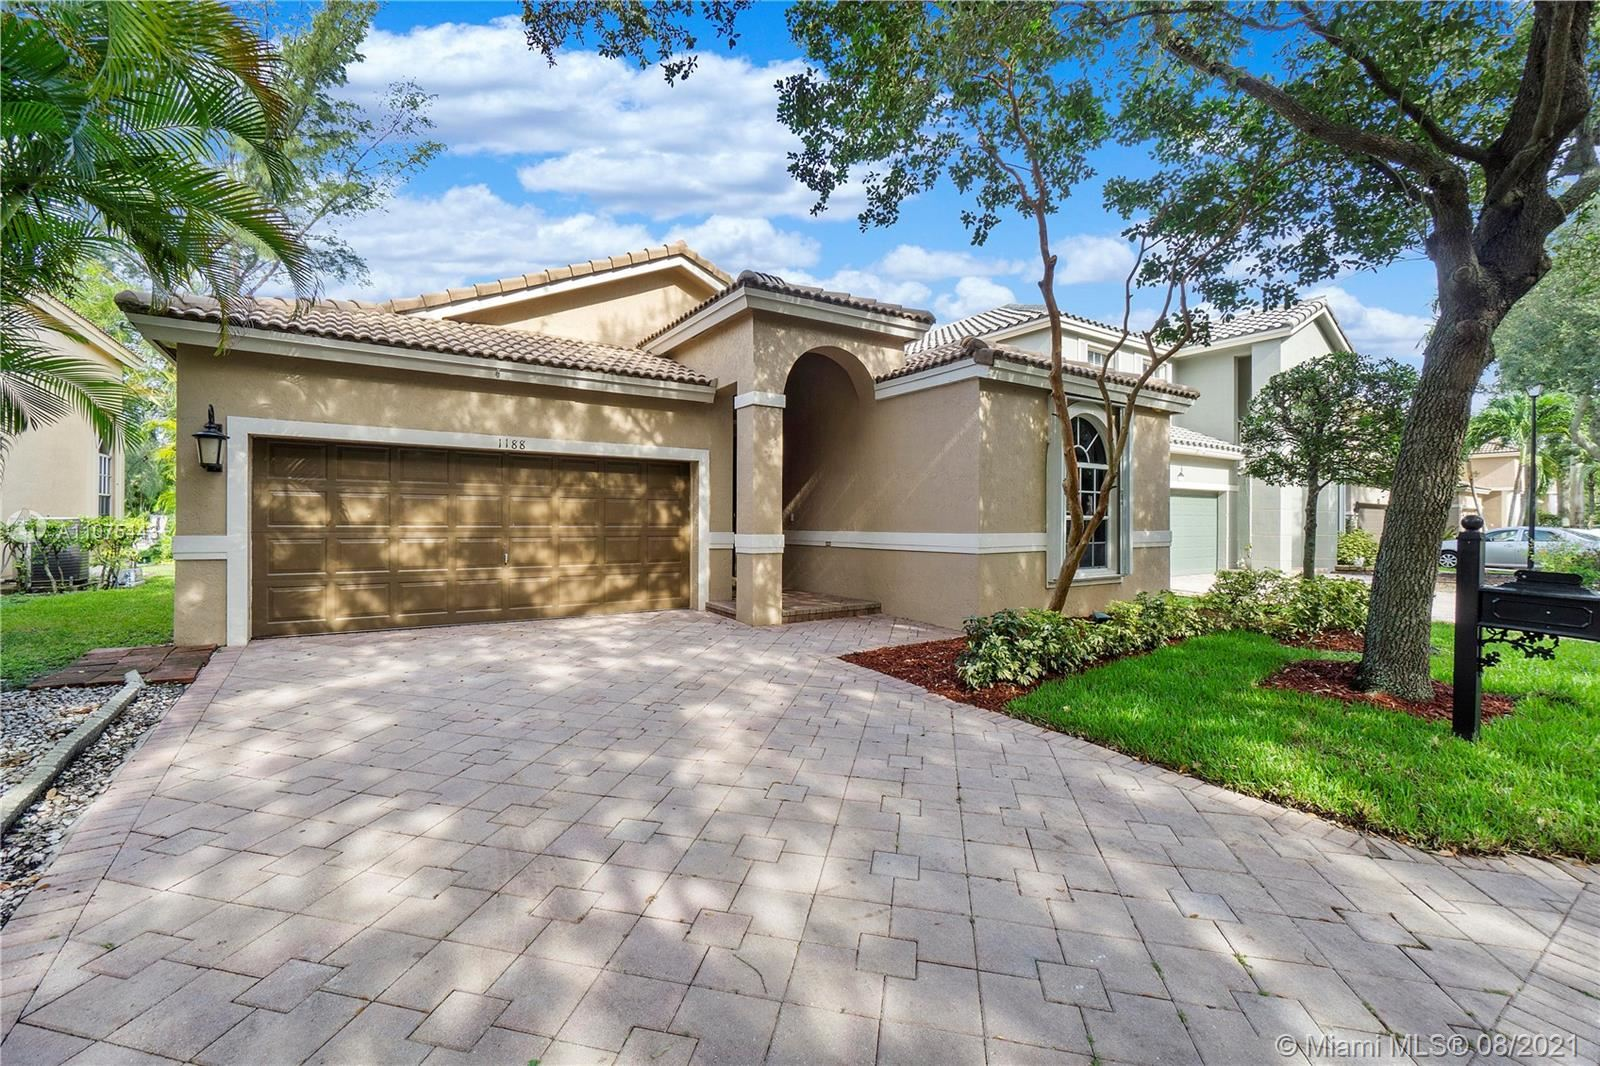 1188 NW 117th Ave, Coral Springs, FL 33071 - #: A11075443